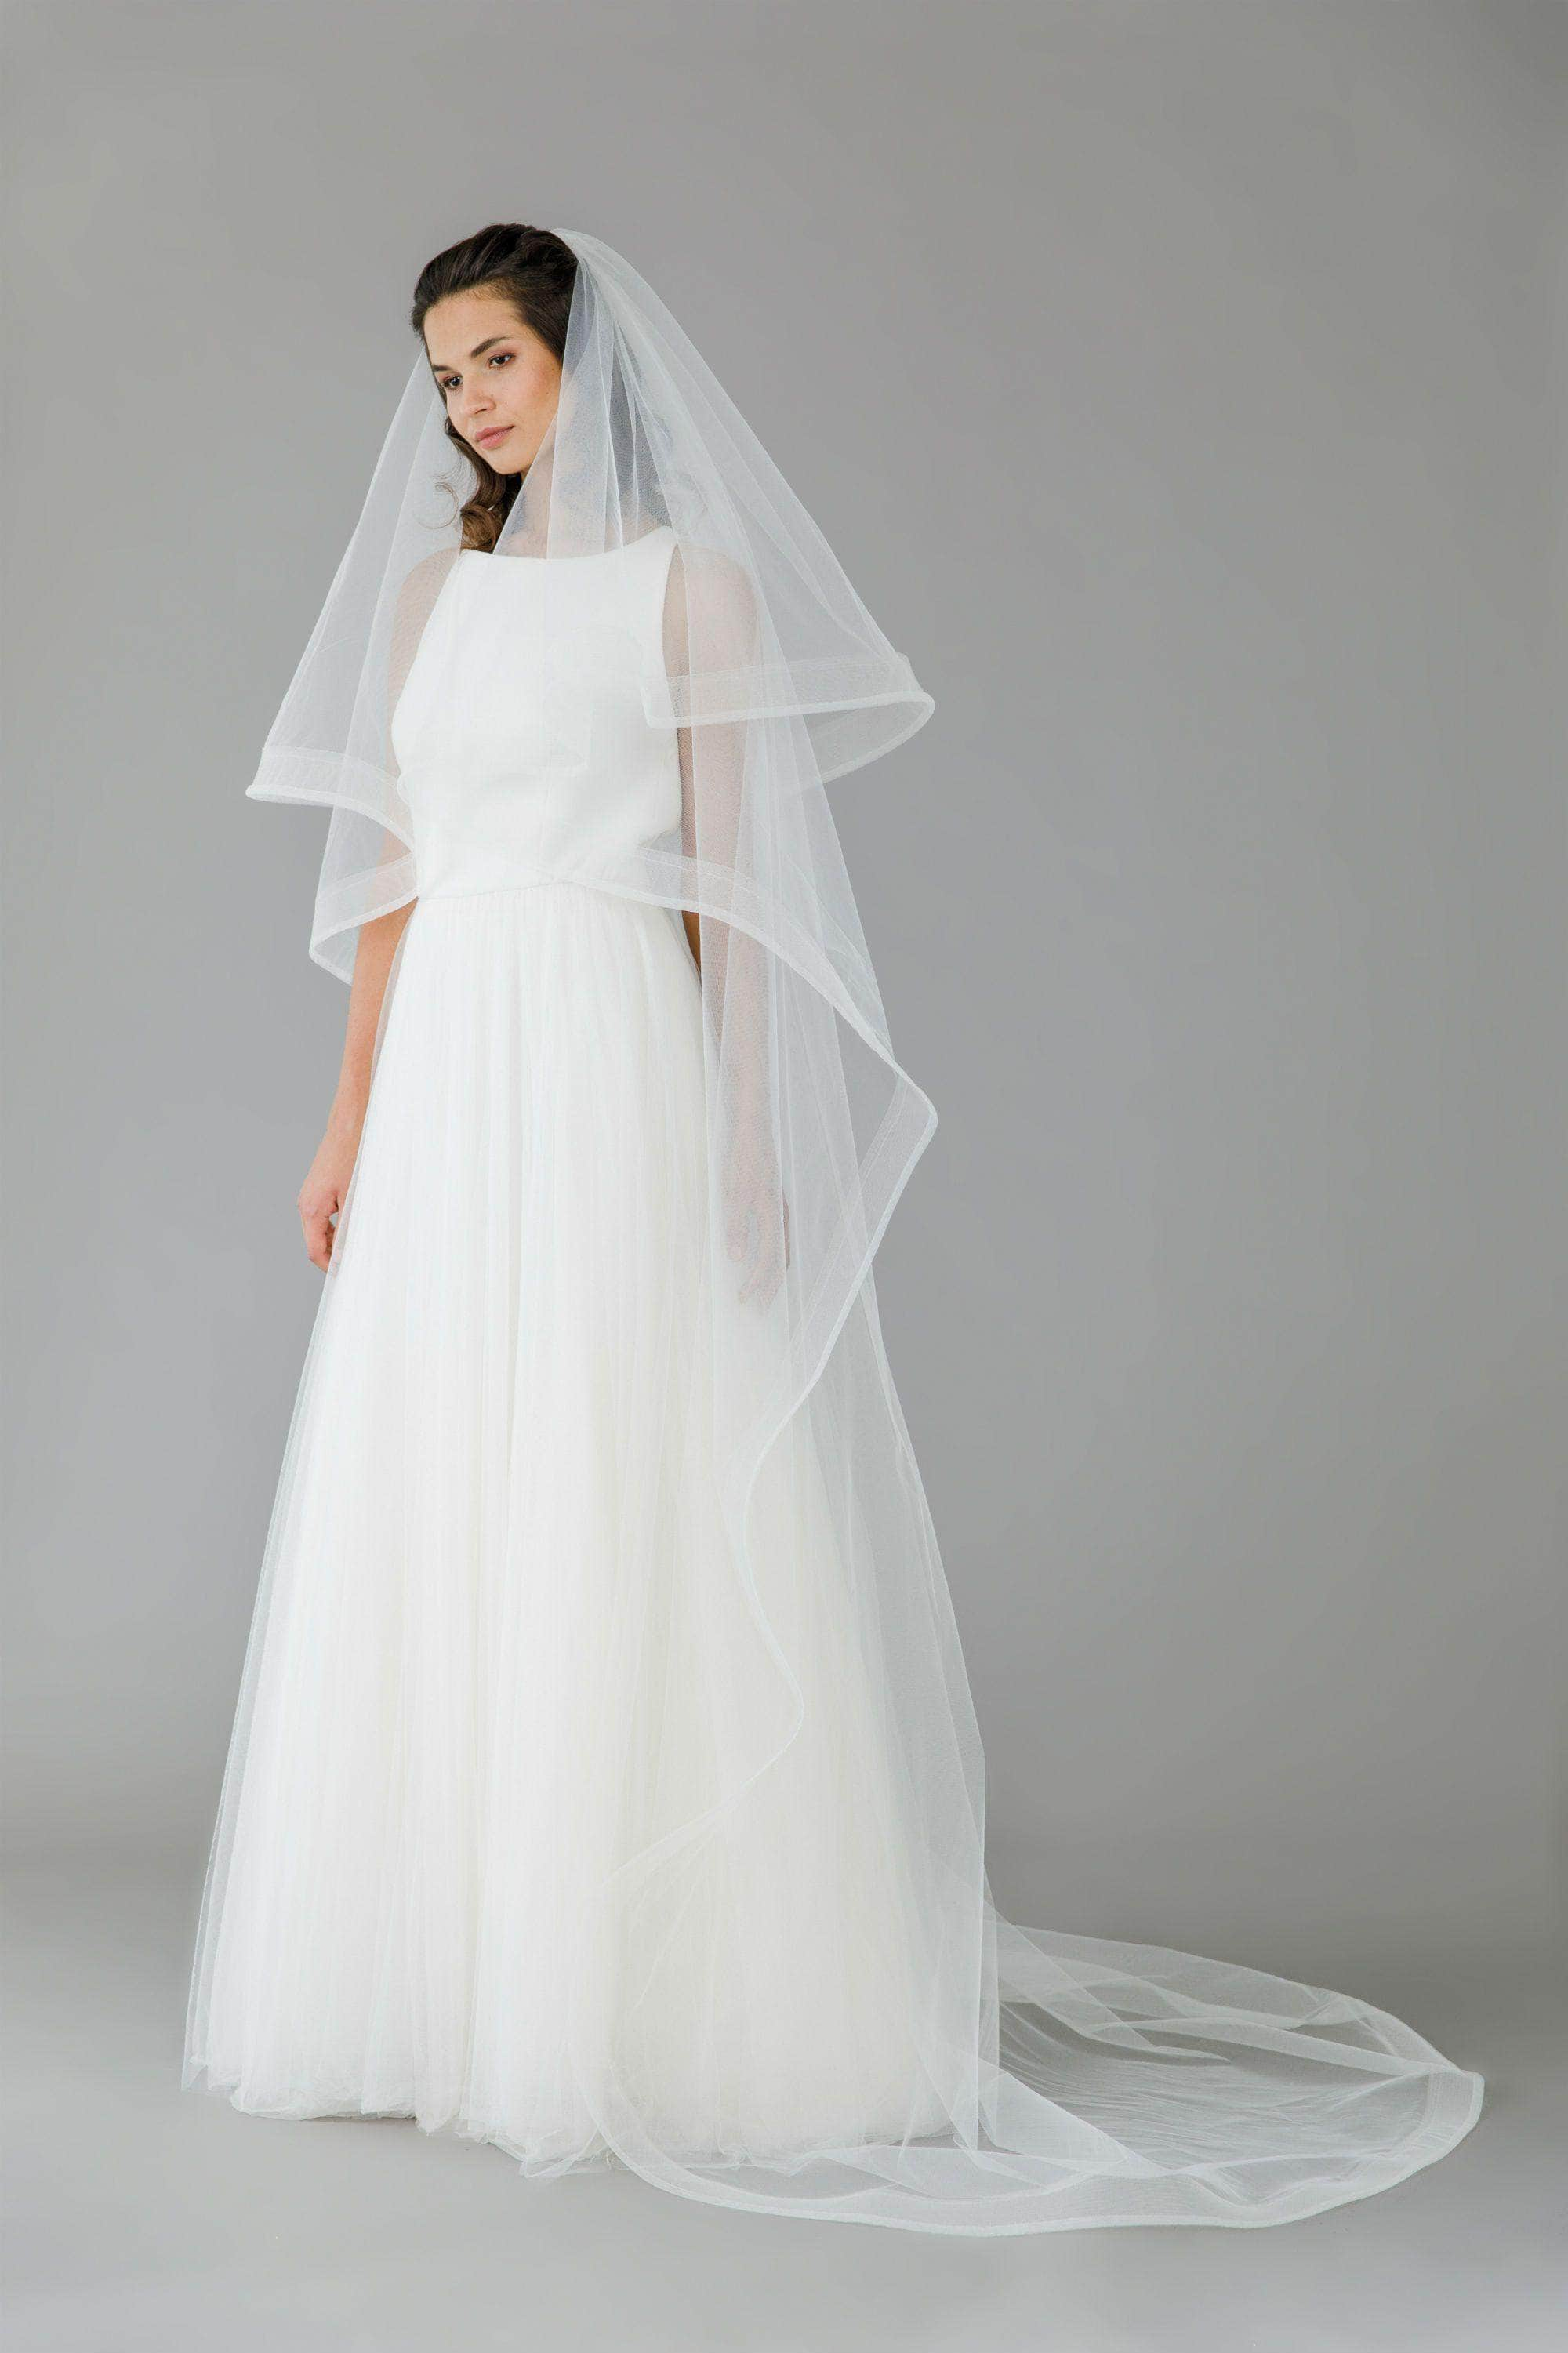 Wedding Veil Horsehair two tier wedding veil - 'Atlas'